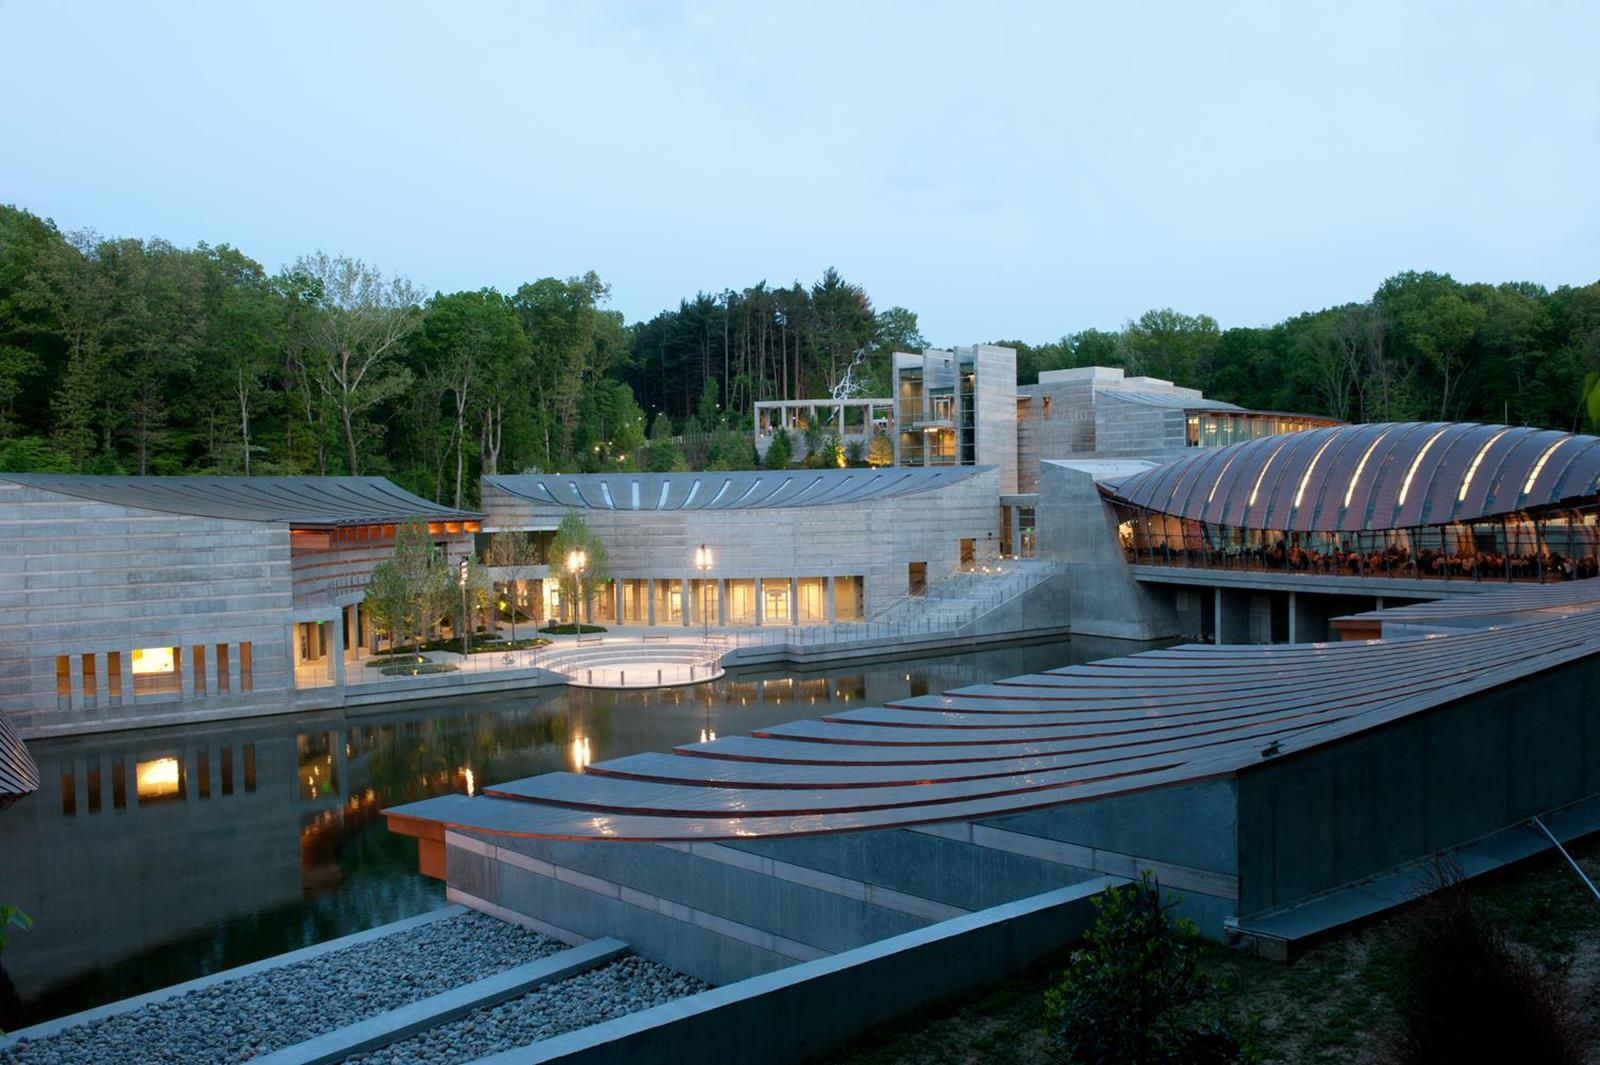 The Crystal Bridges Museum of American Art welcomes all to celebrate the power of art and the beauty of nature.